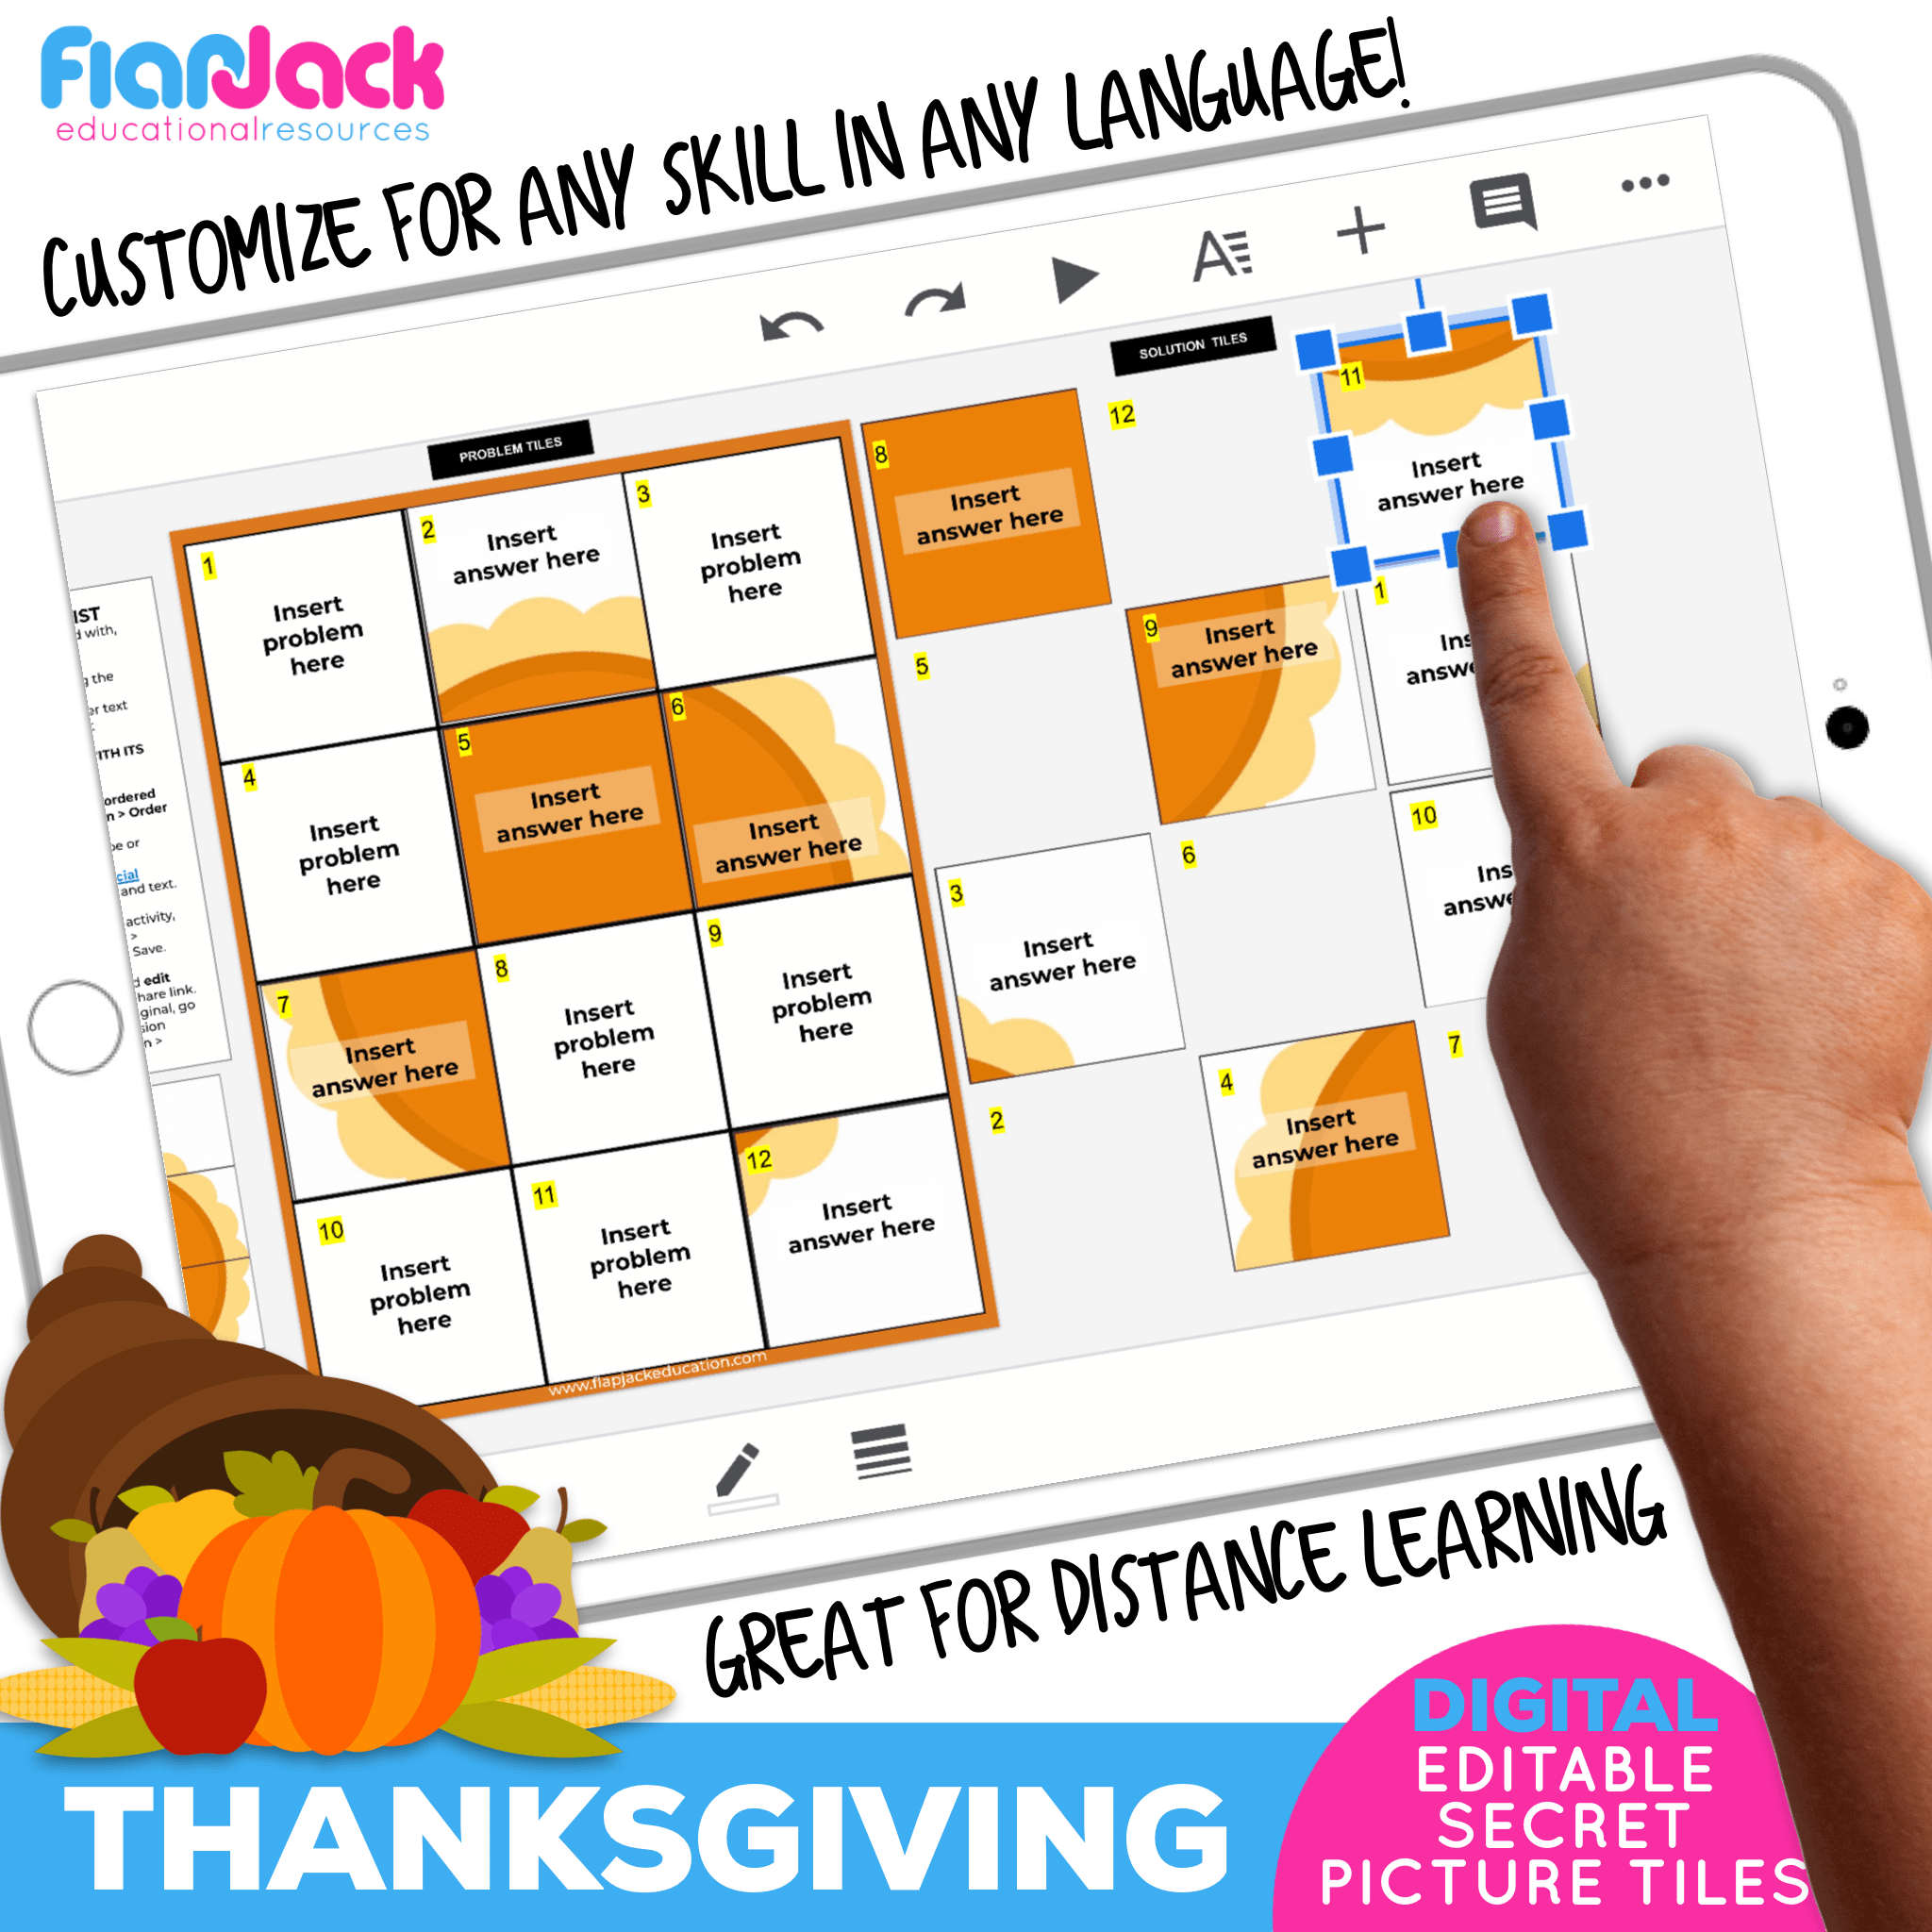 Digital Editable Google Slide Secret Picture Tiles | Thanksgiving